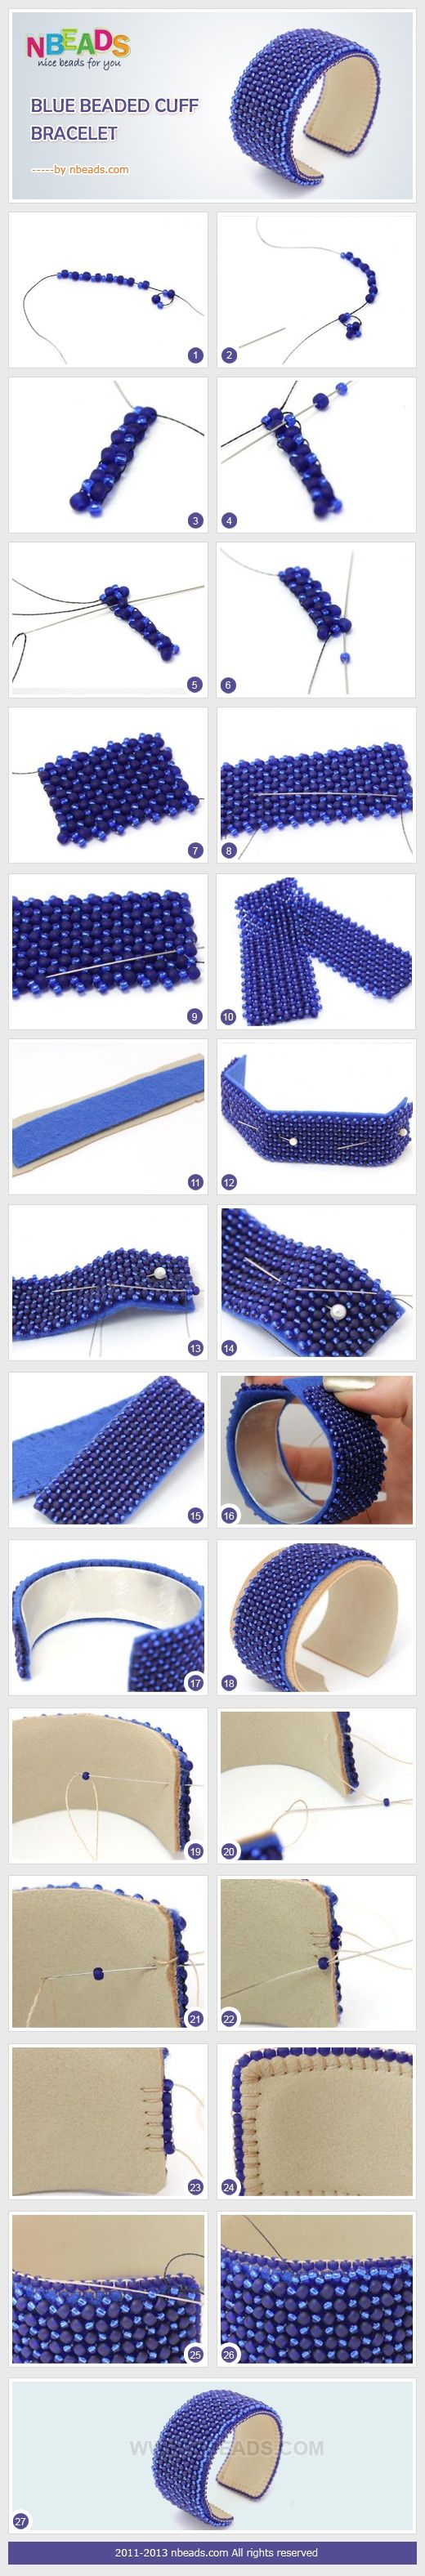 Blue Beaded Cuff Bracelet by Amanda Wong | Project | Jewelry / Accessories | Kollabora